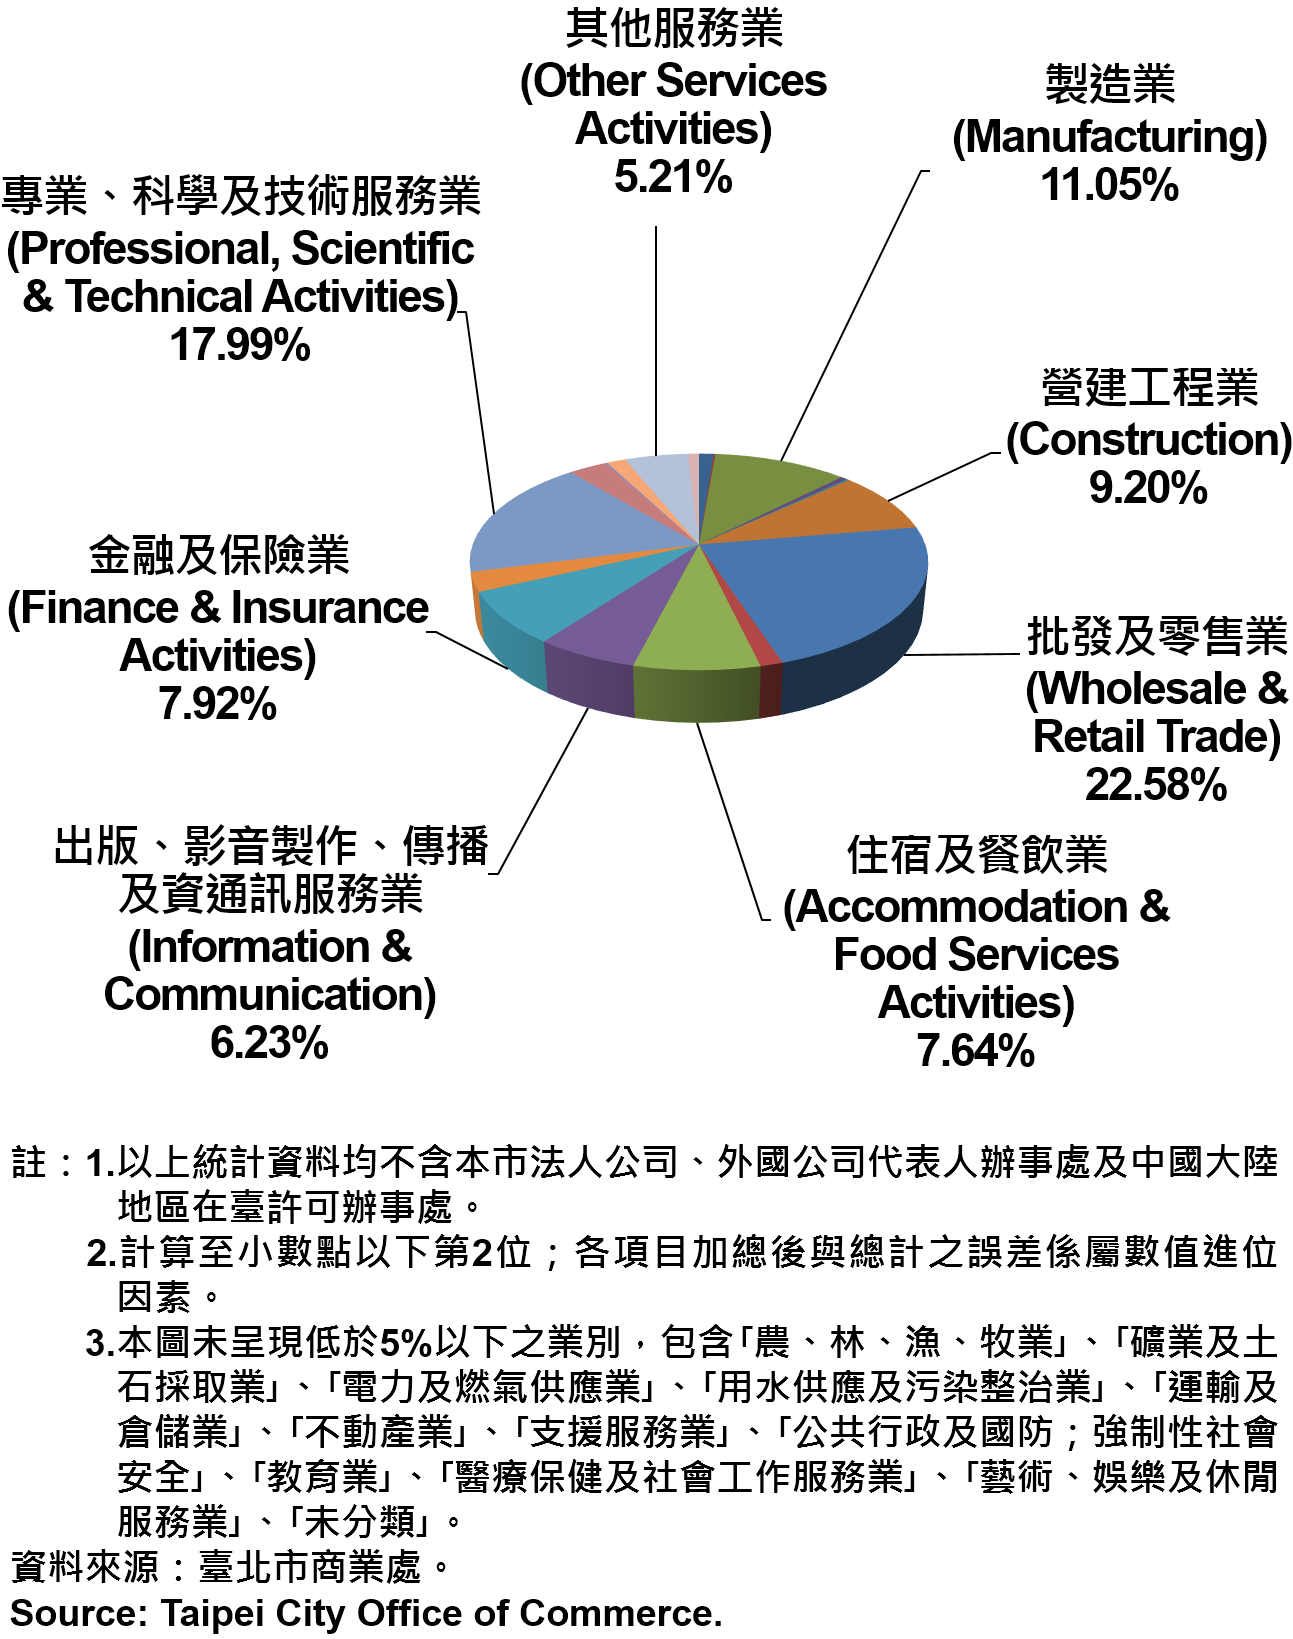 臺北市新創公司行號之業別分布情形—依現存家數—2019 Newly Registered Companies in Taipei City by Industry- Number of Current—2019